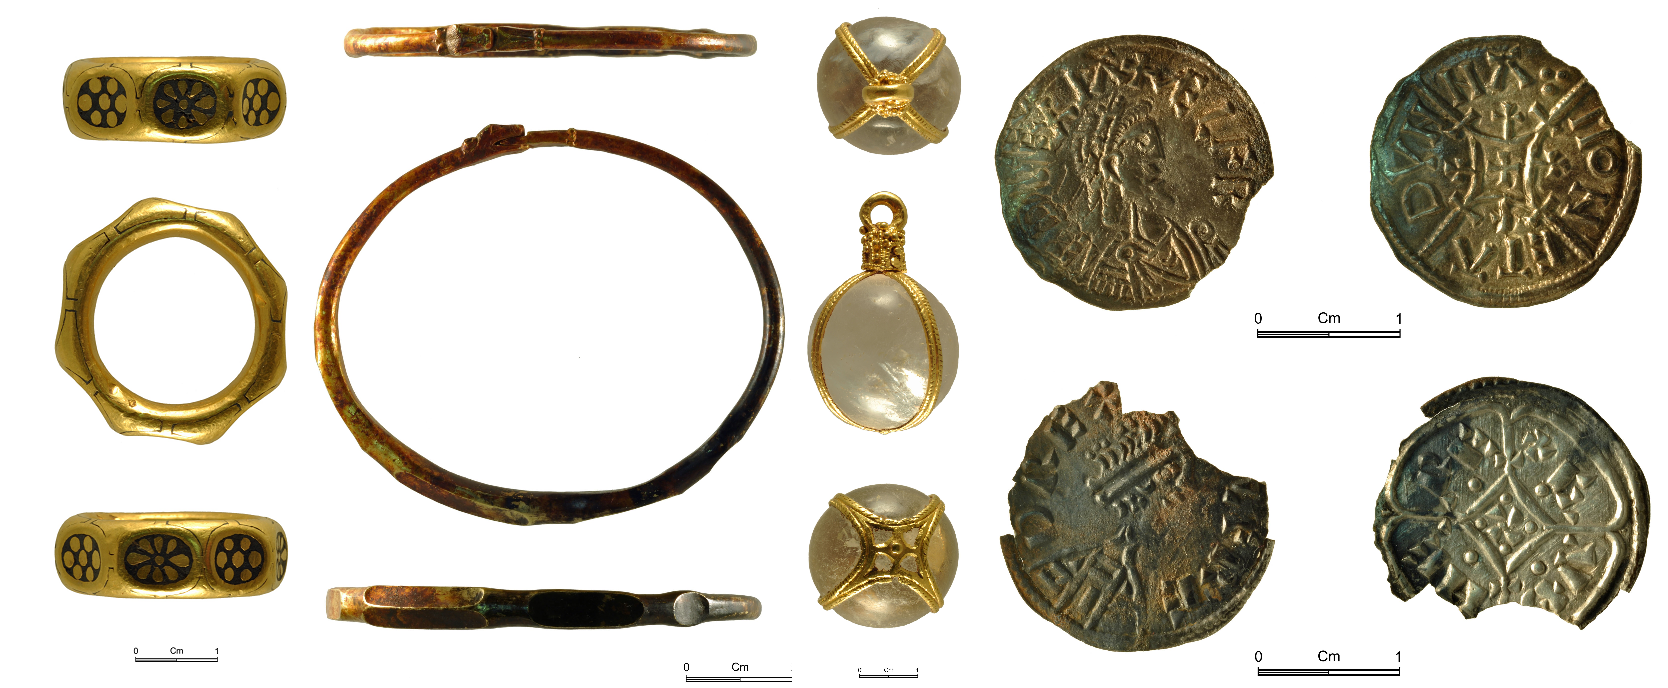 Some of the hoard discovered by the men